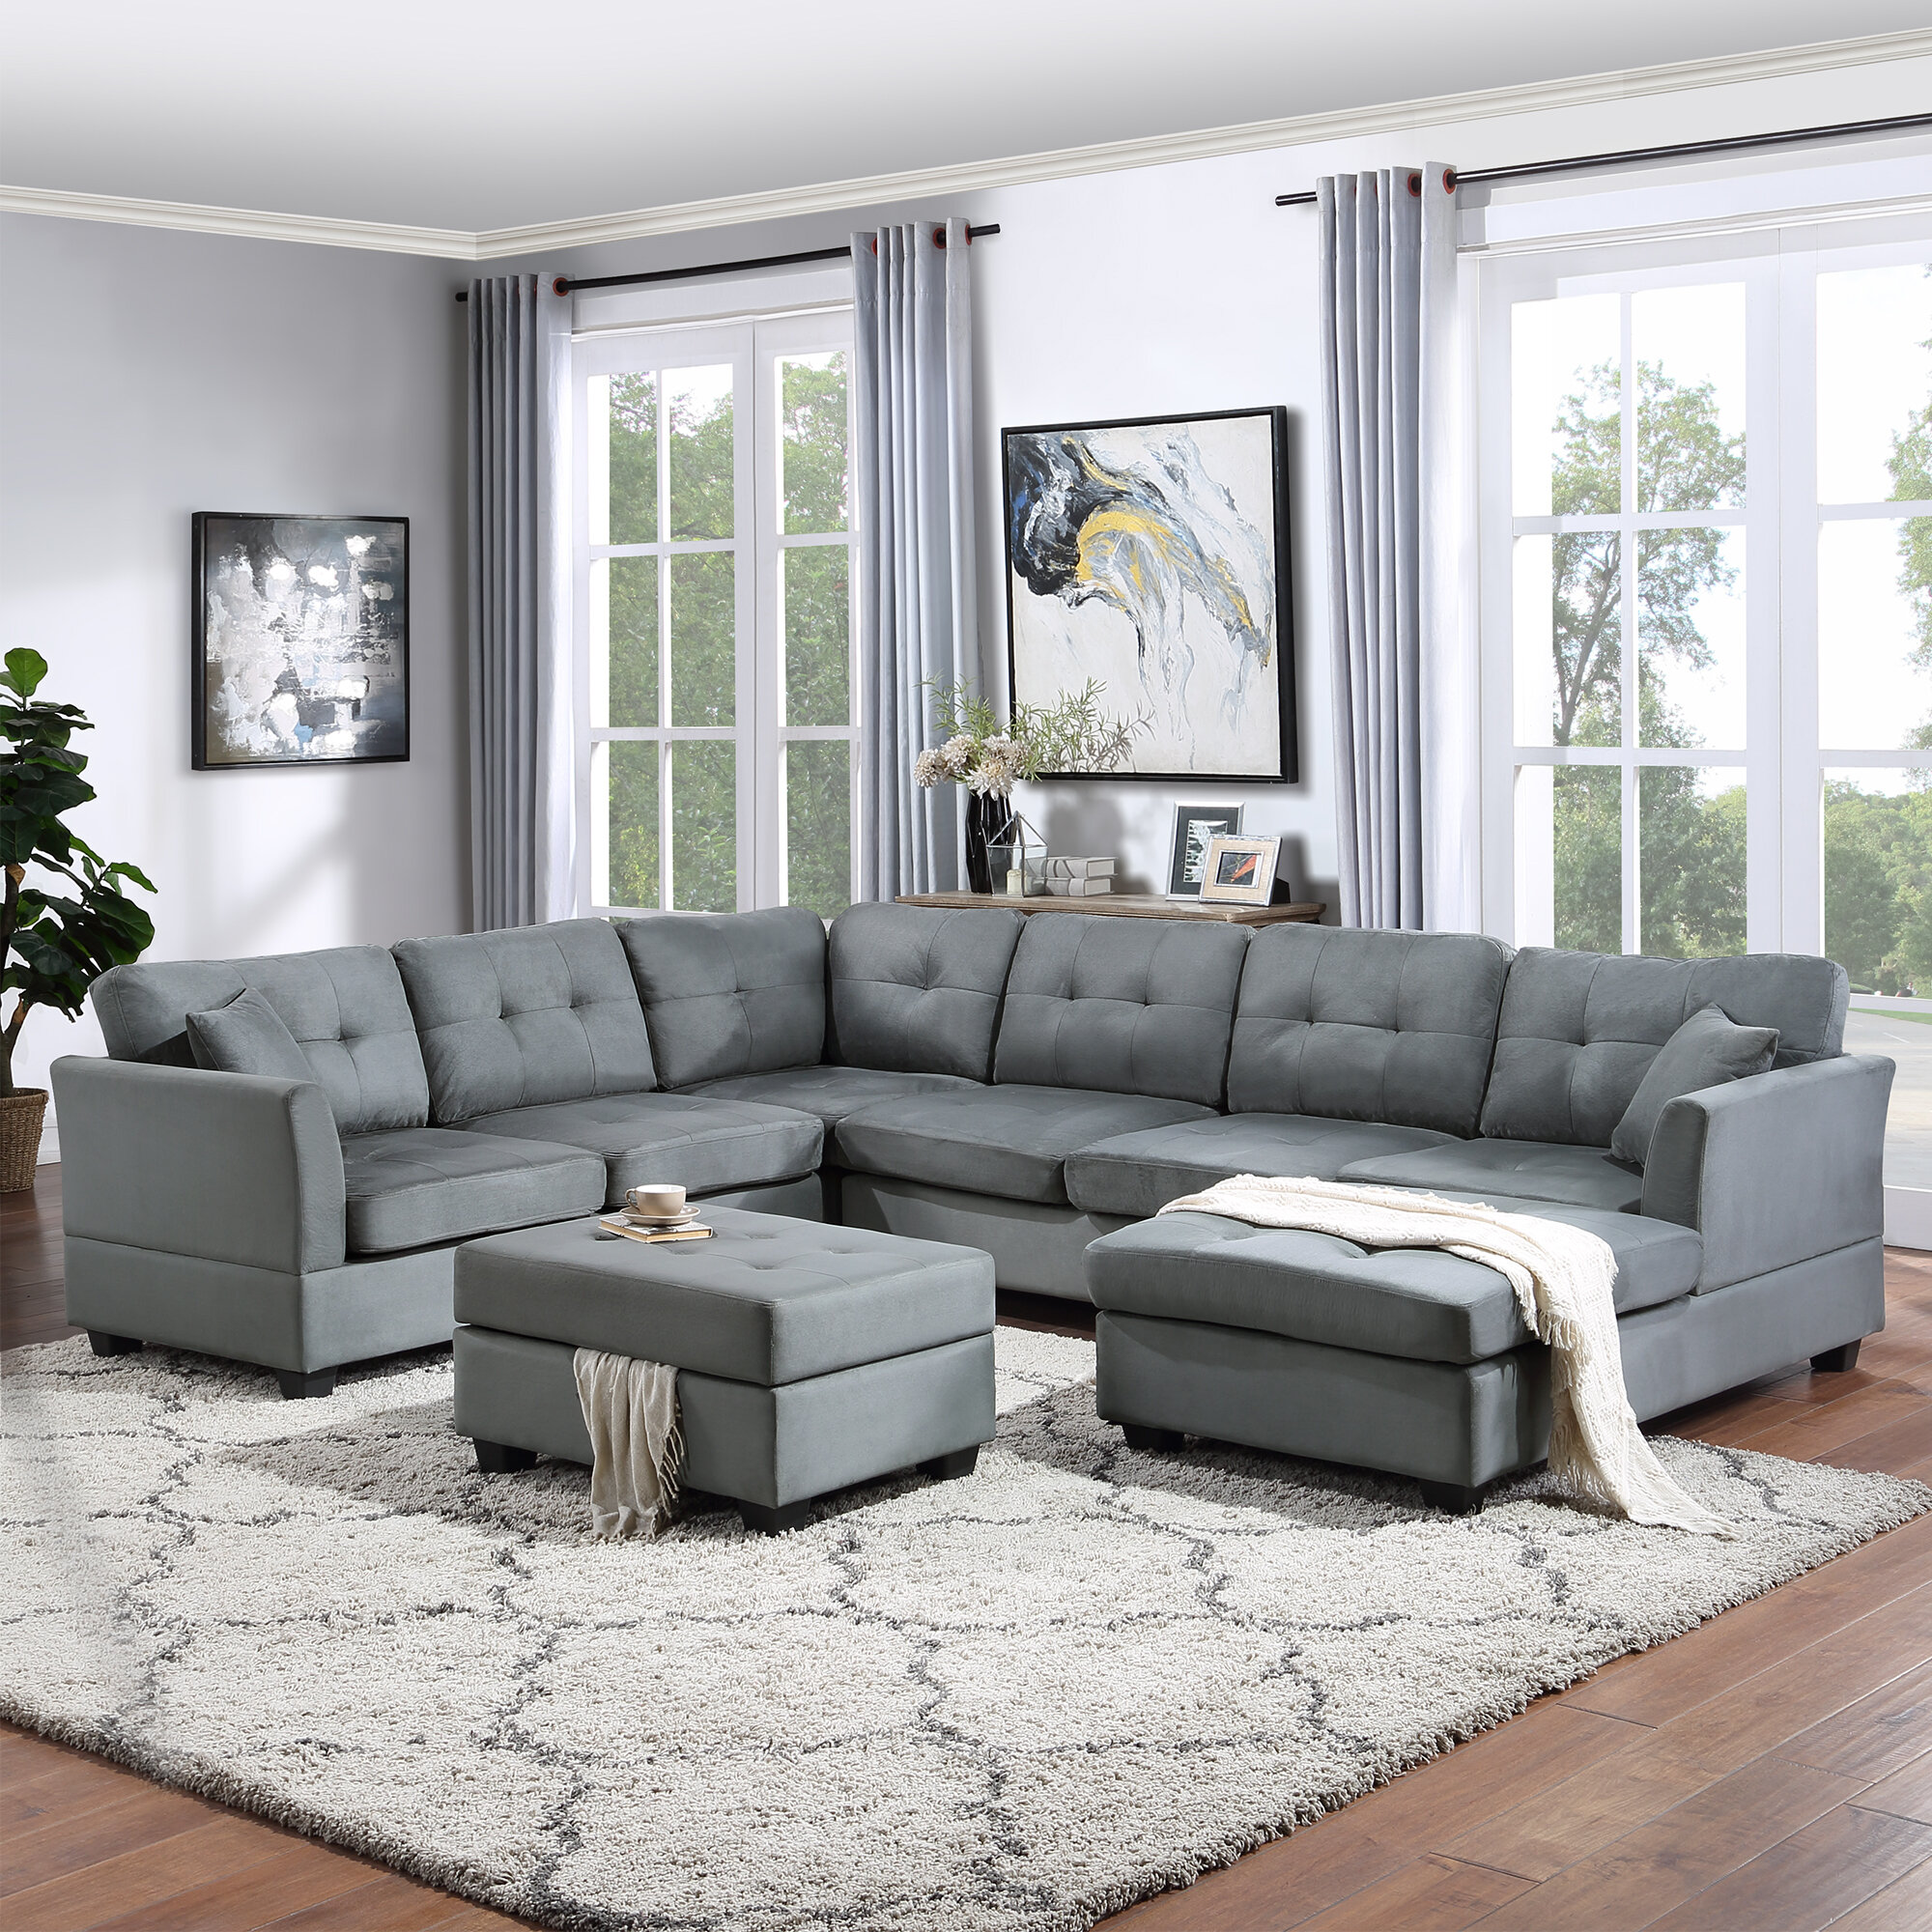 Red Barrel Studio® Sectional Sofa With Two Pillows, U-Shape